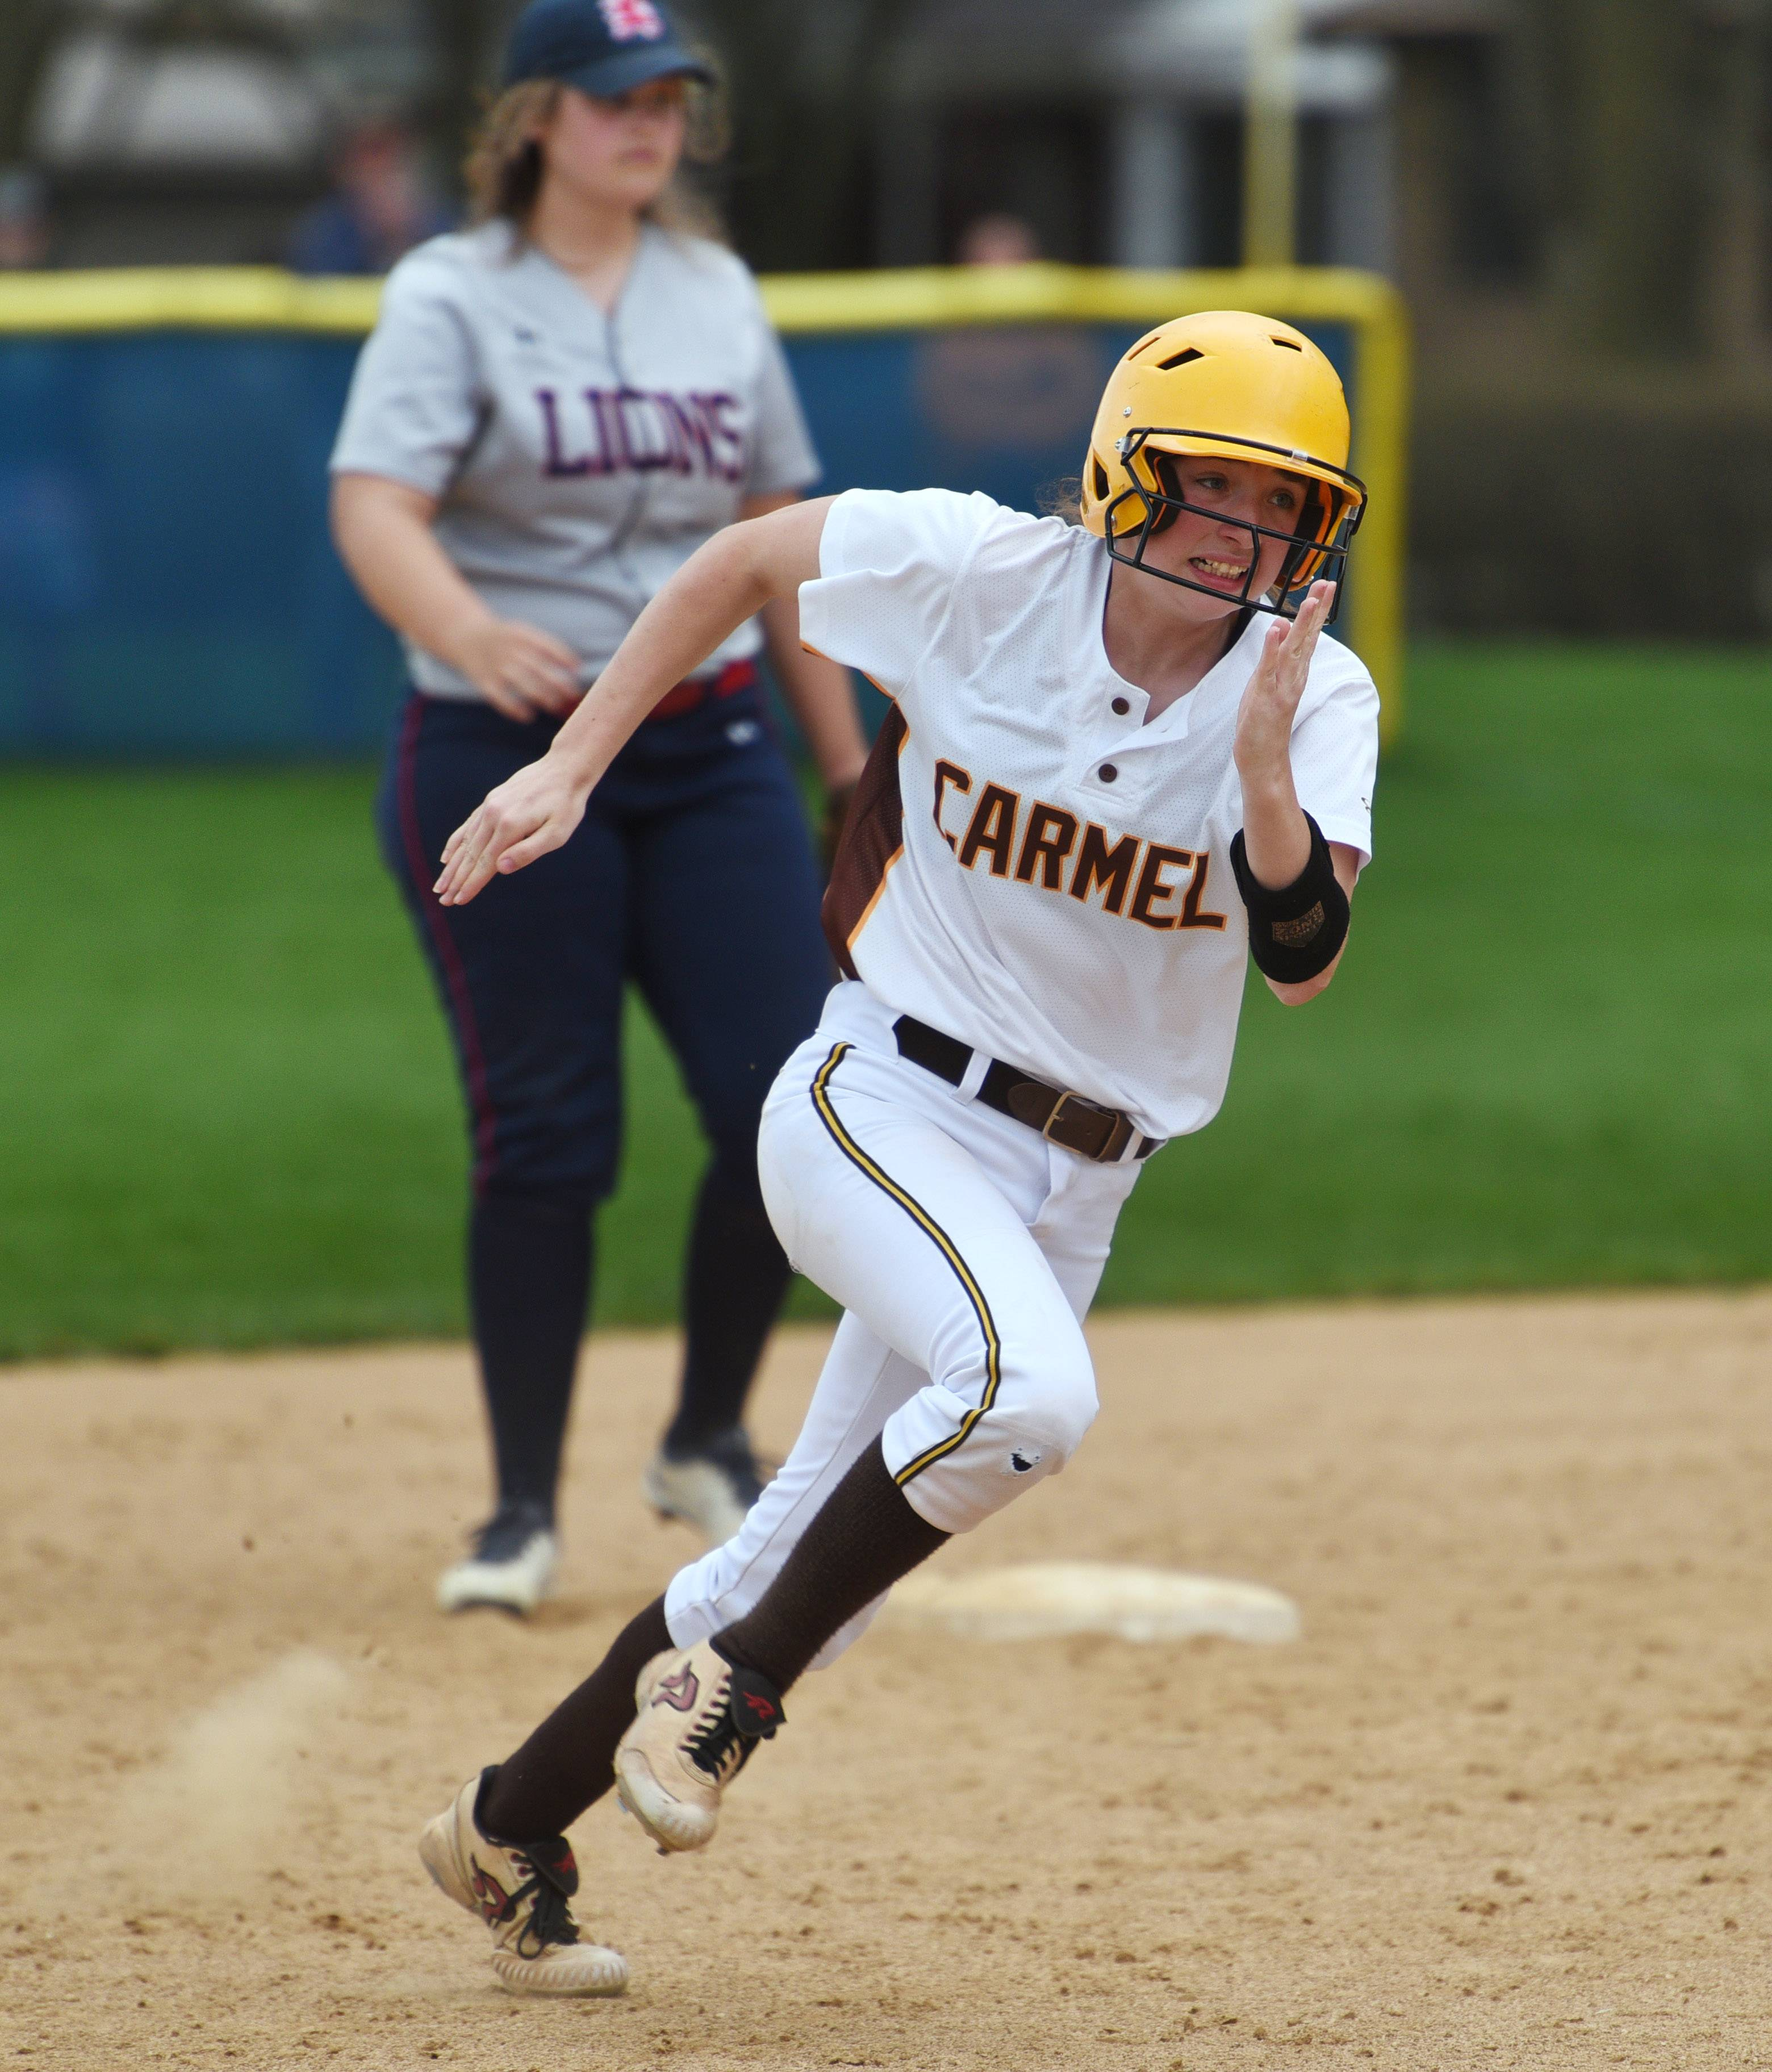 Carmel's Hailie Swiatkowski rounds second base, making it safely to third base, during Monday's softball game against St. Viator in Arlington Heights.